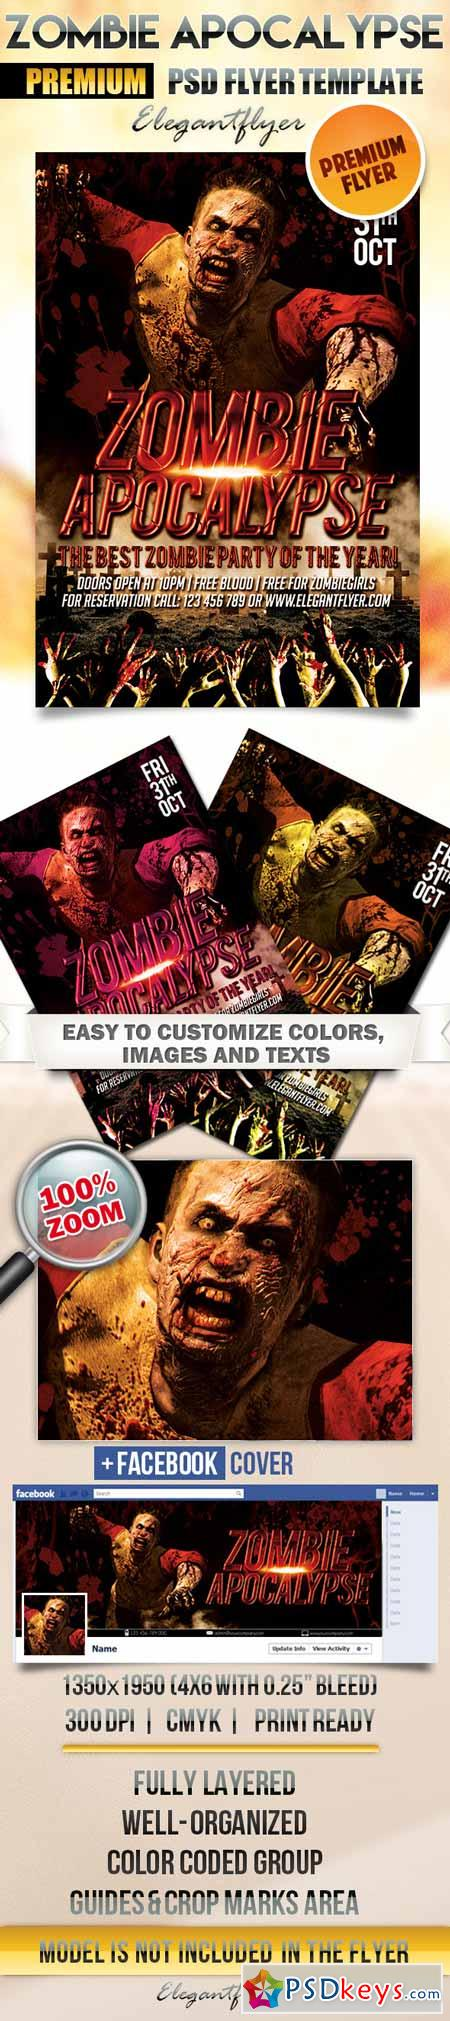 Zombie Free Download Photoshop Vector image Via Torrent – Zombie Flyer Template